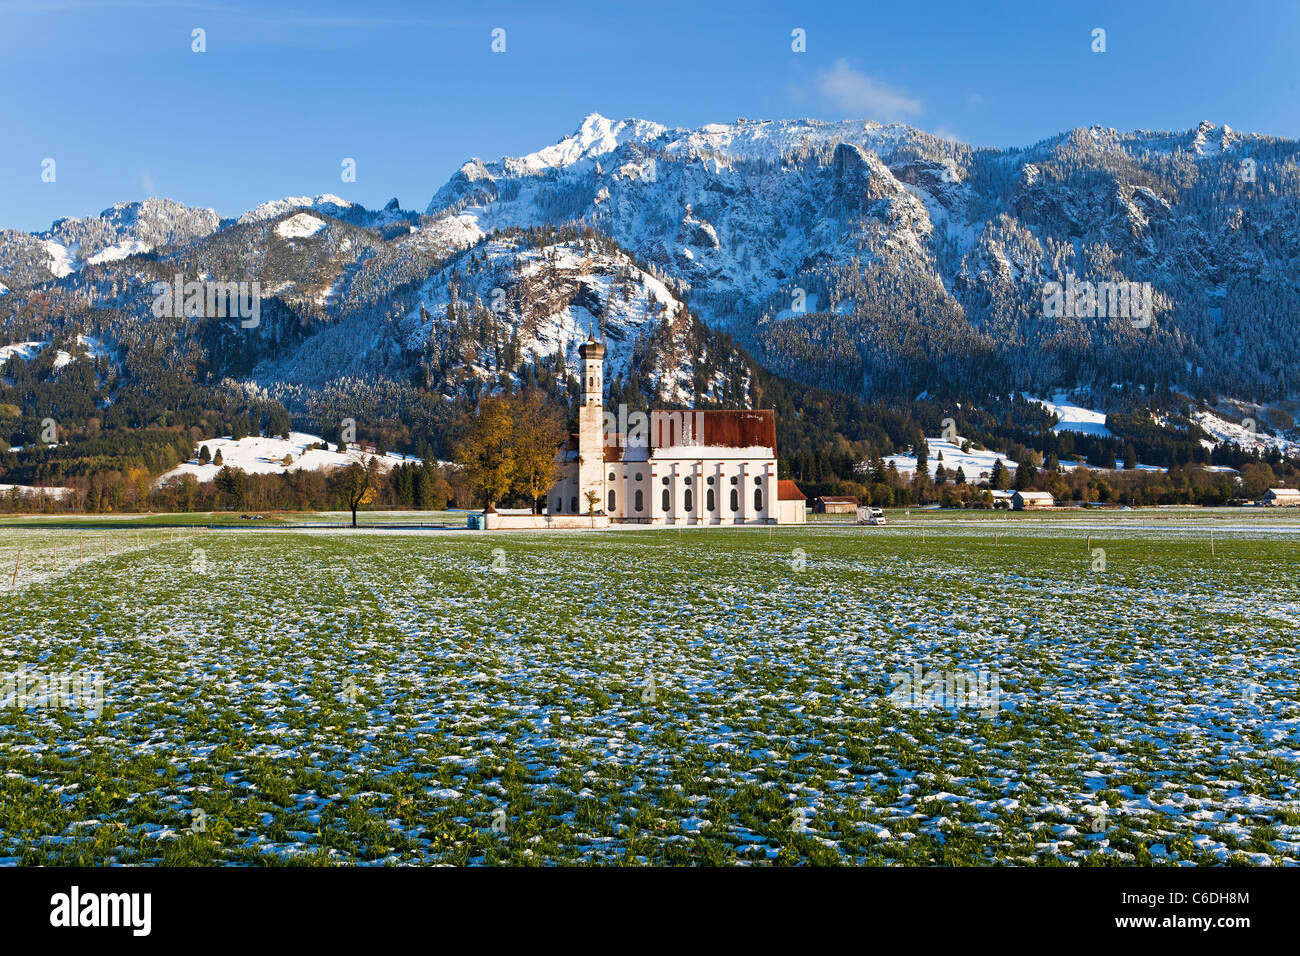 Germany, Bavaria, Oberbayern, St Coloman Church - Stock Image